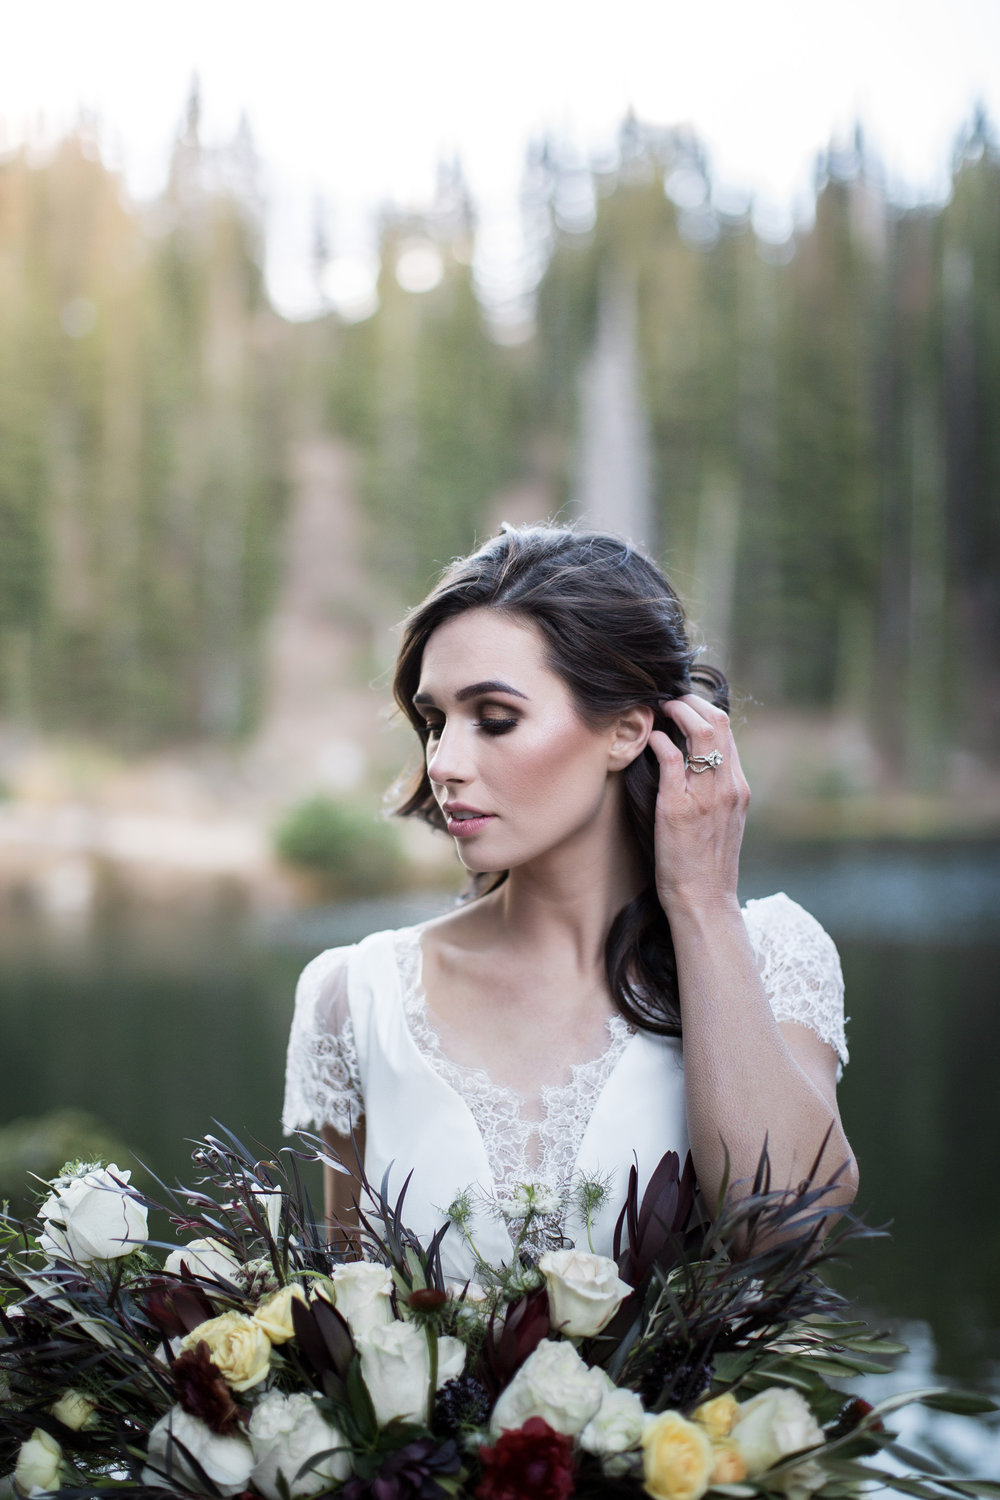 UtahValleyBrideShootTR2016 (53 of 110).jpg